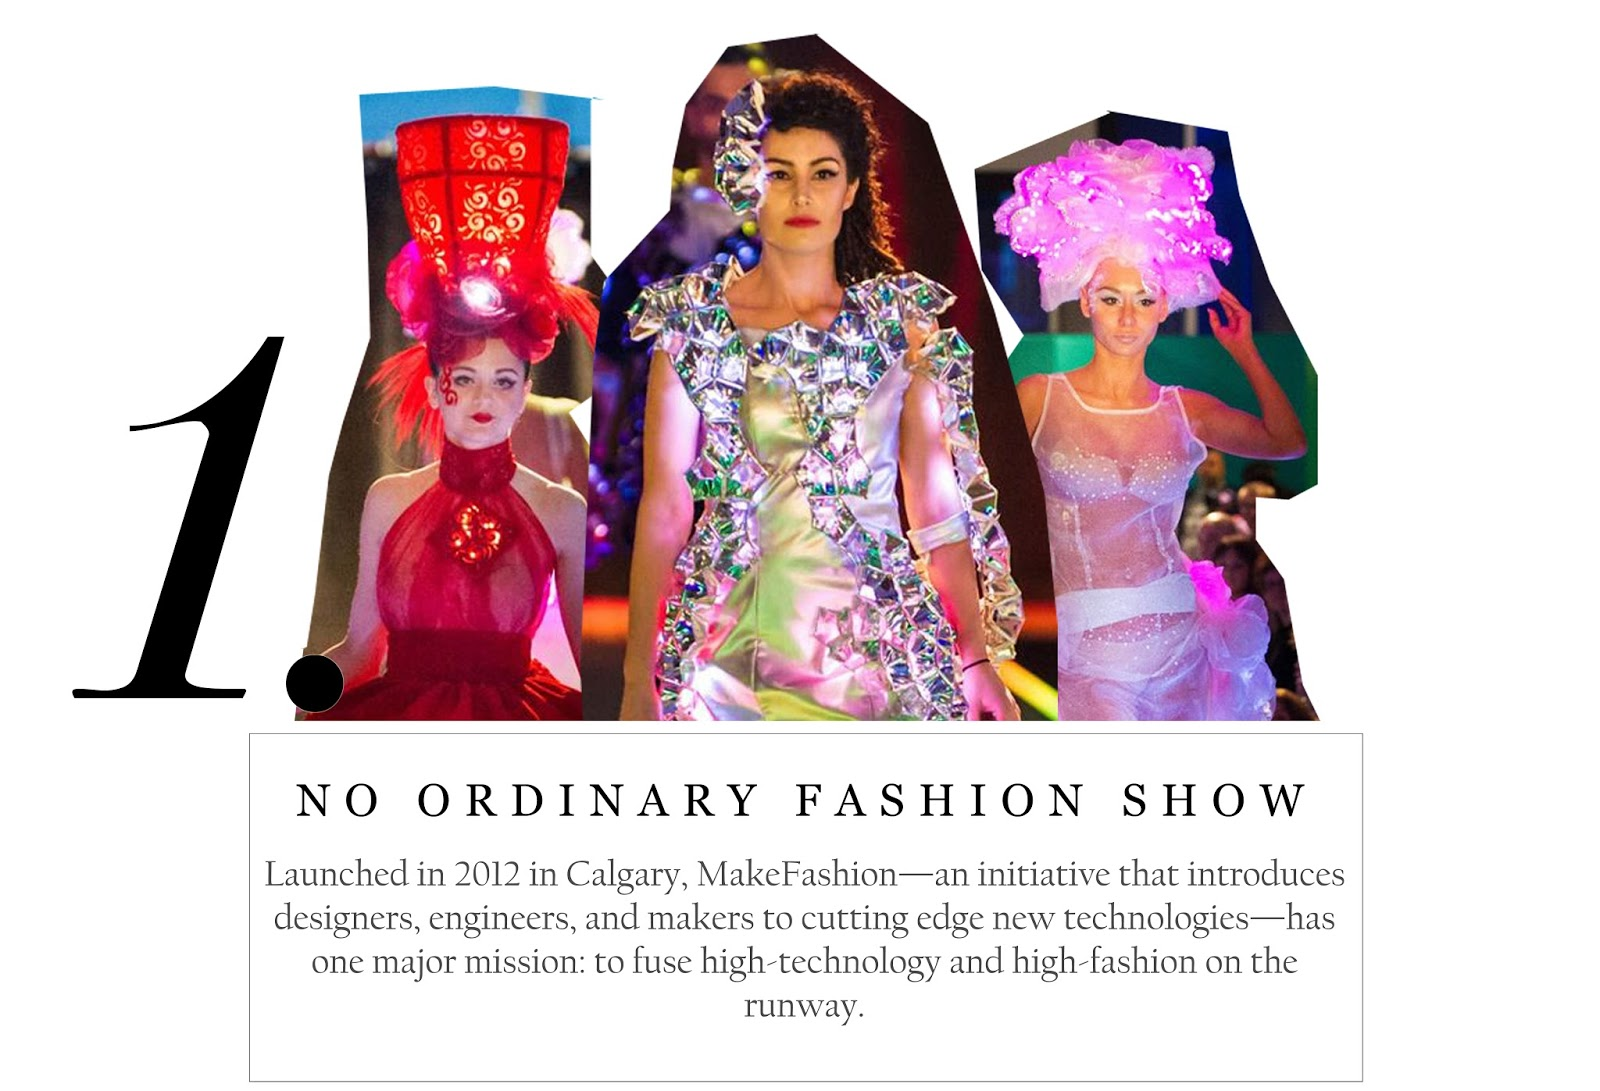 Launched in 2012 in Calgary, MakeFashion—an initiative that introduces desginers, engineers, and makers to cutting-edge new technologies—has one major mission: to fuse high-technology and high-fashion on the runway.